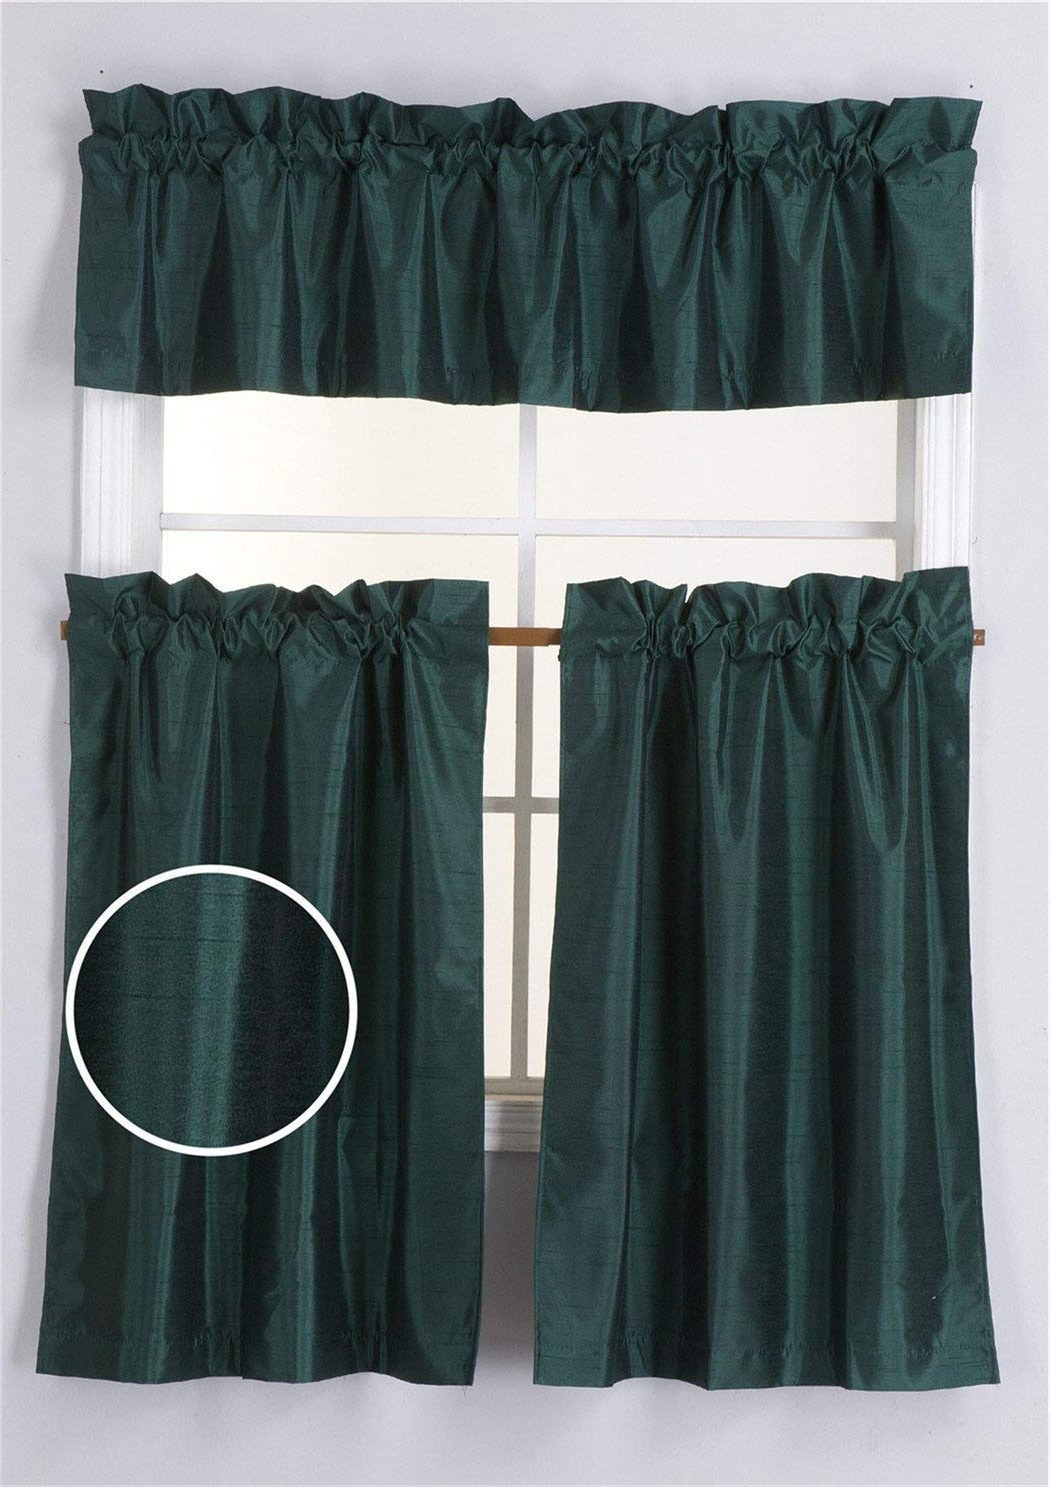 Most Current Faux Silk 3 Piece Kitchen Curtain Sets Regarding Elegant Home 3 Piece Solid Color Faux Silk Semi Blackout Kitchen Window Curtain Set With Tiers And Valance Solid Color White Lined Thermal Blackout (Gallery 9 of 20)